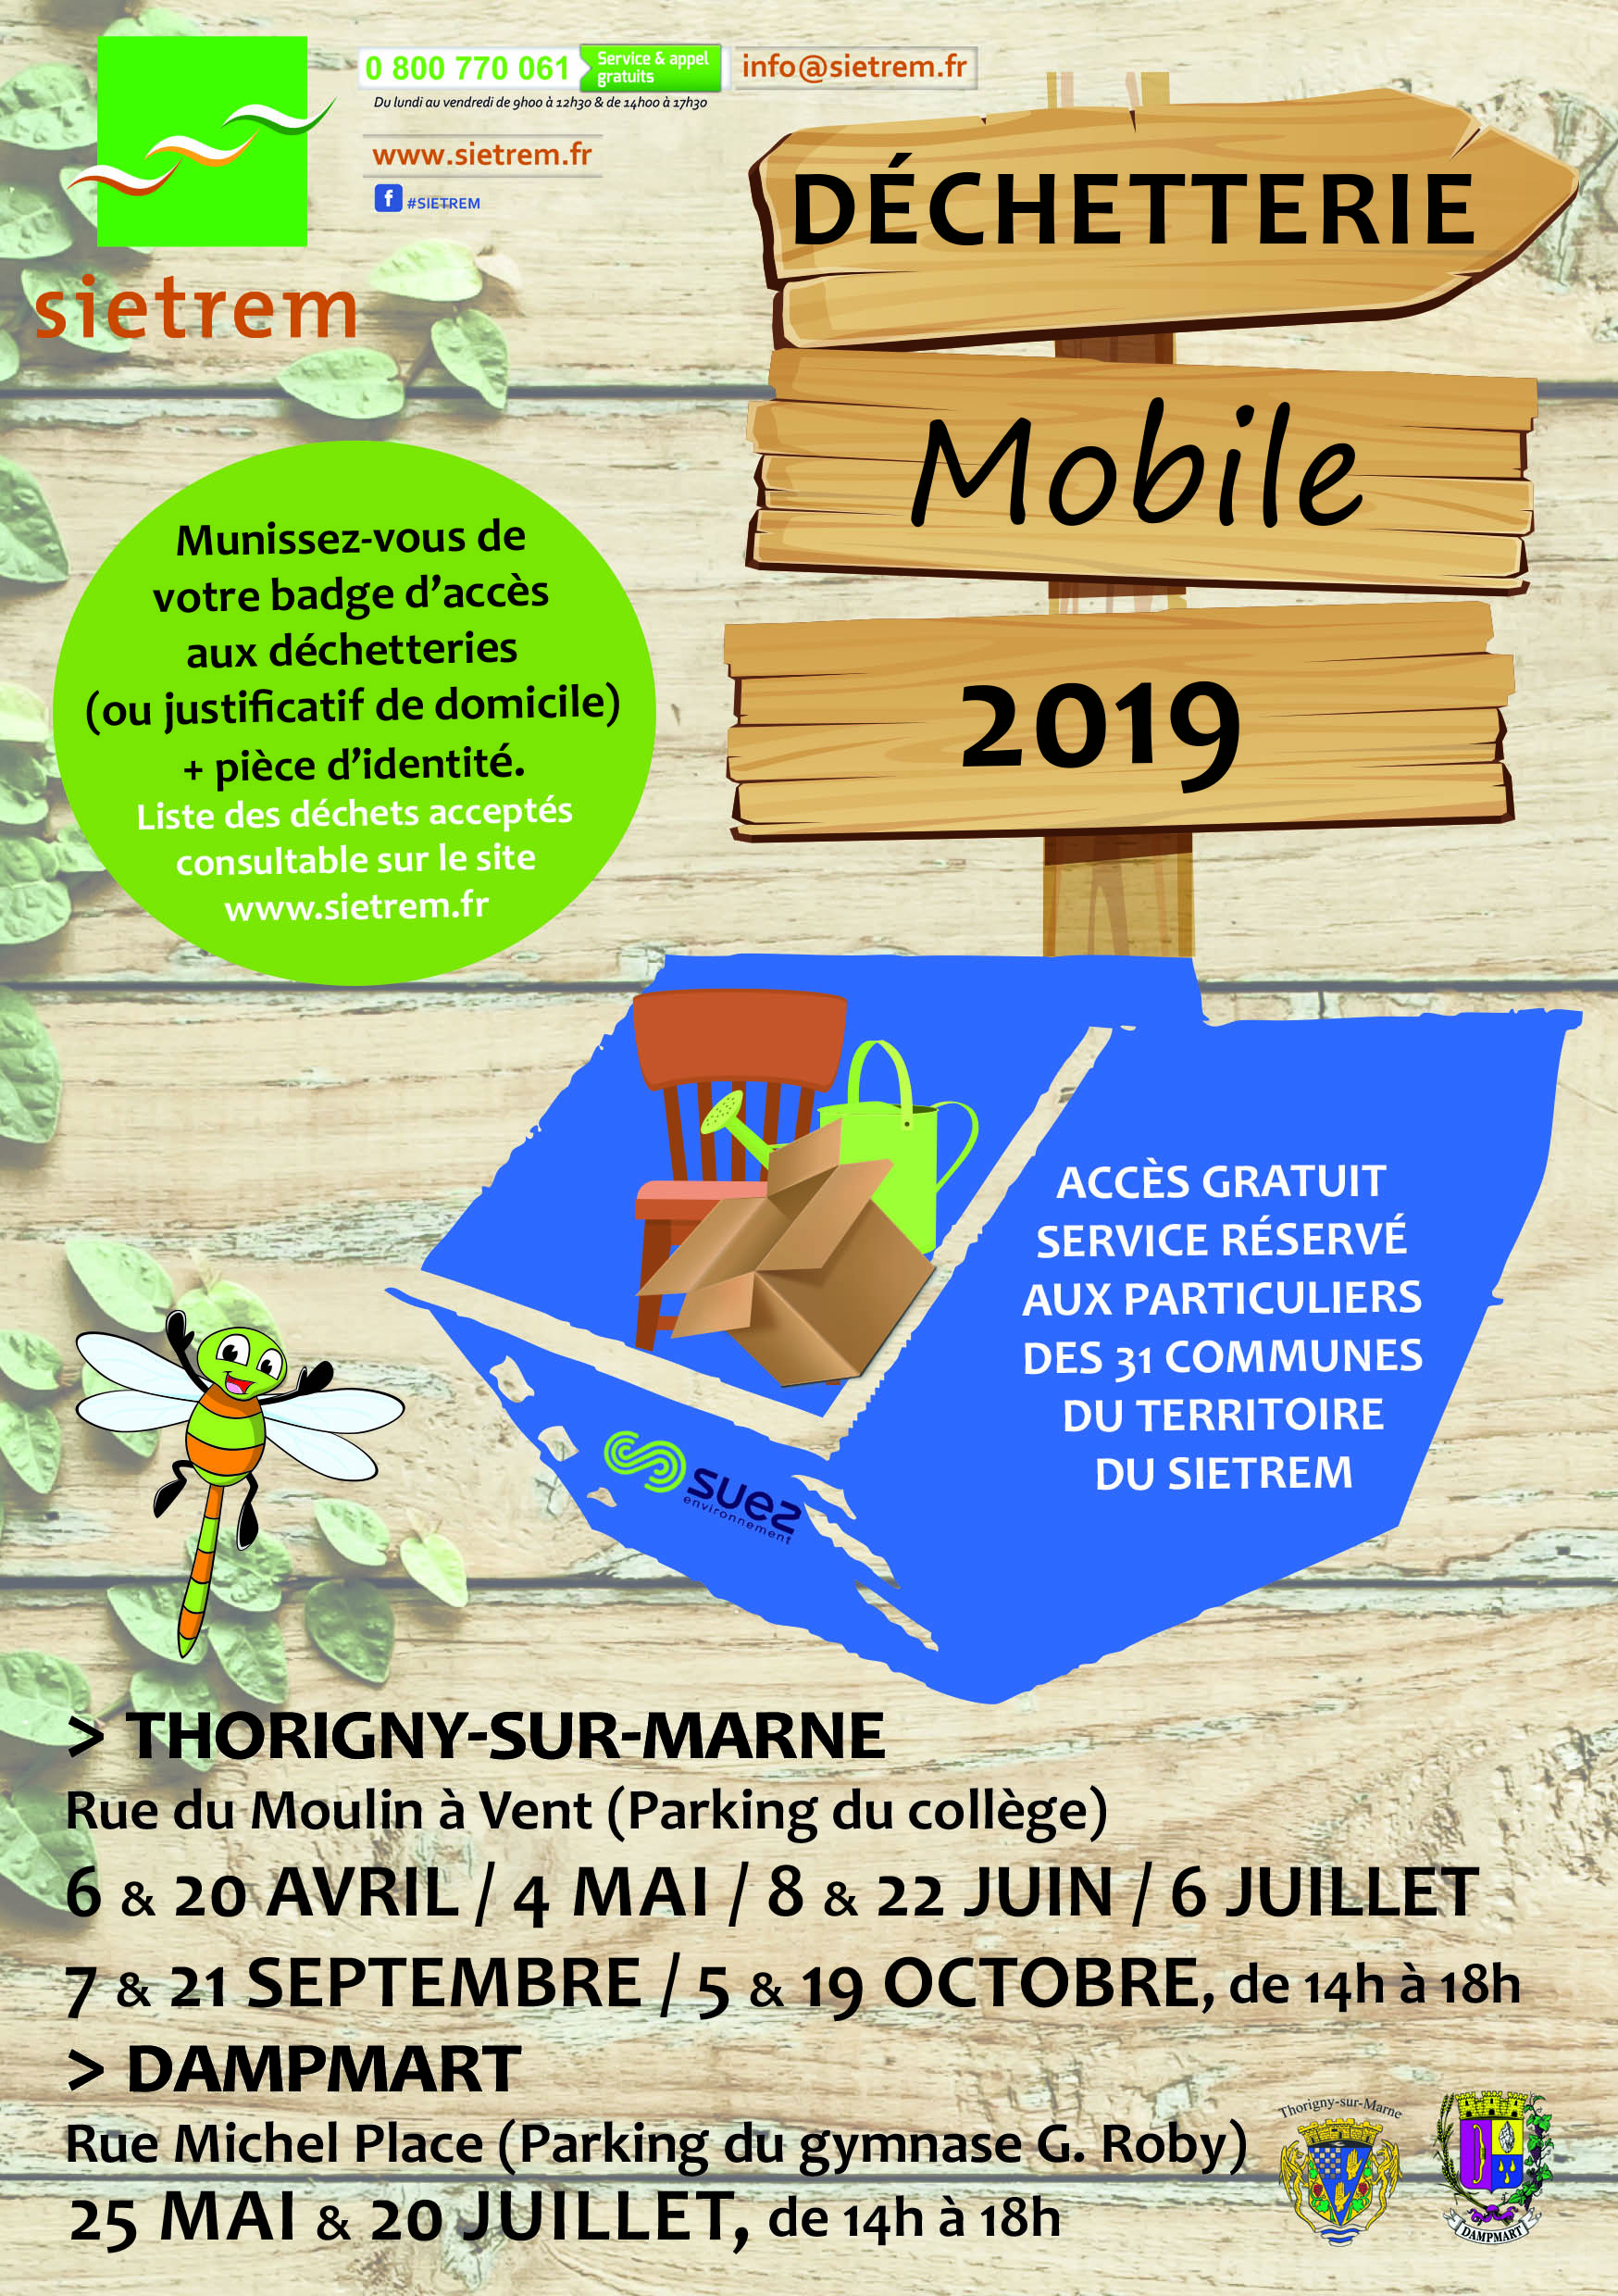 FLYER DECHETTERIE MOBILE2019 Recto